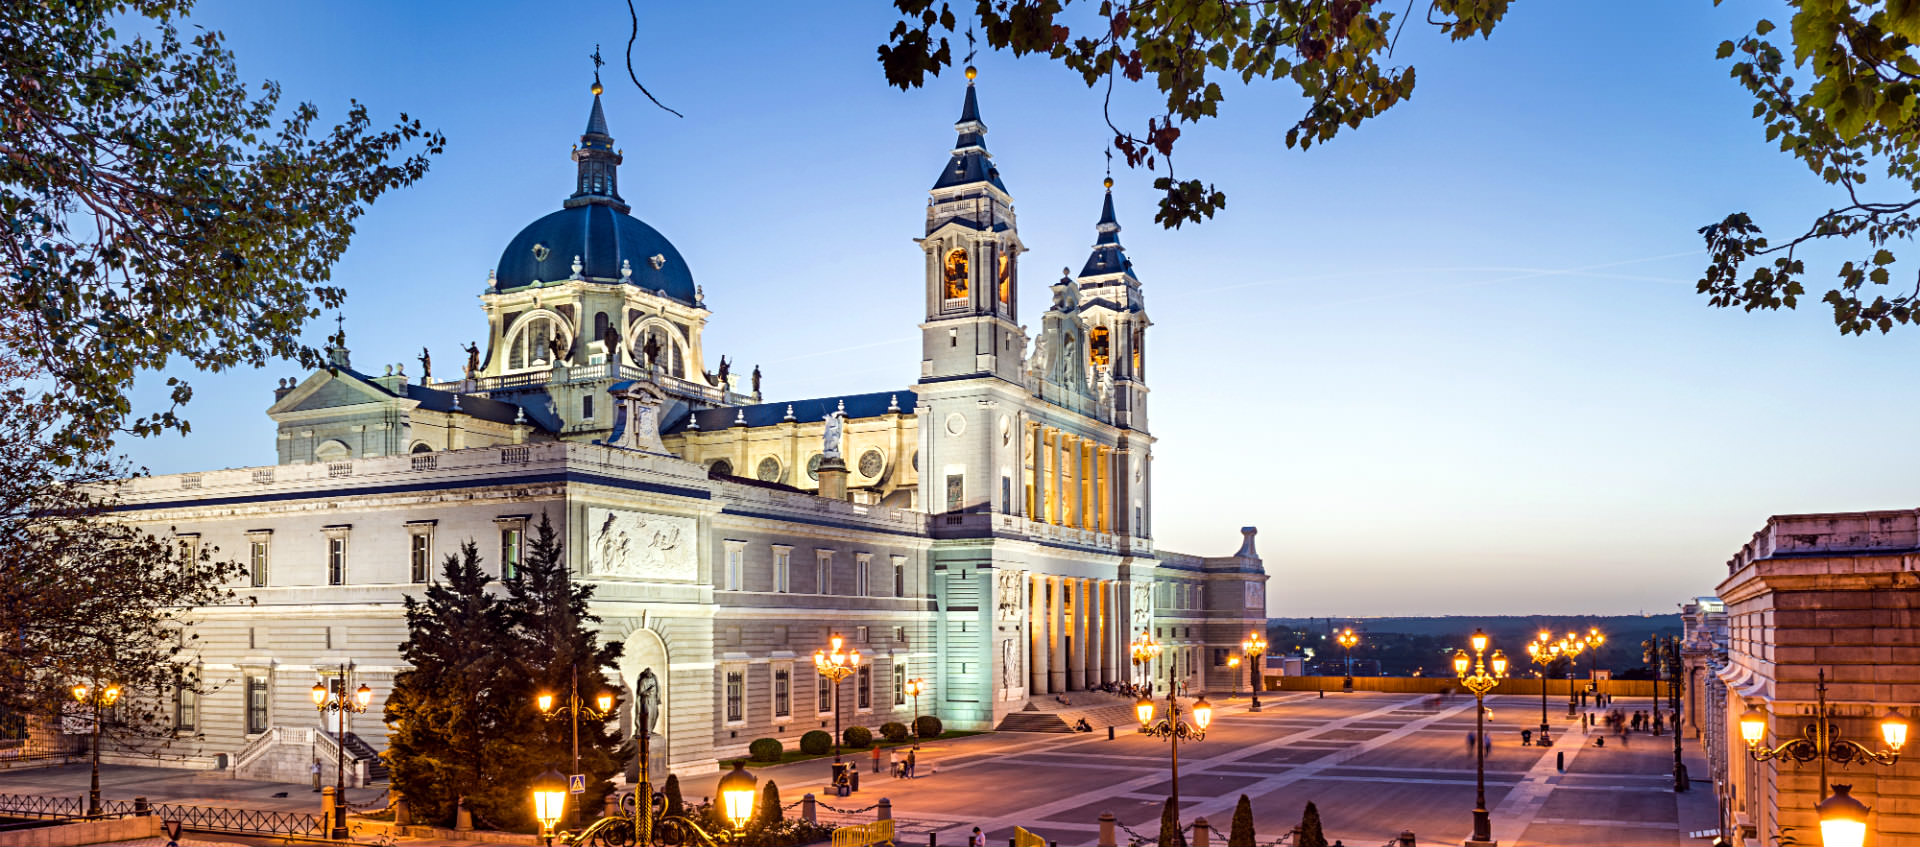 cathedral_almudena_madrid_ogotours